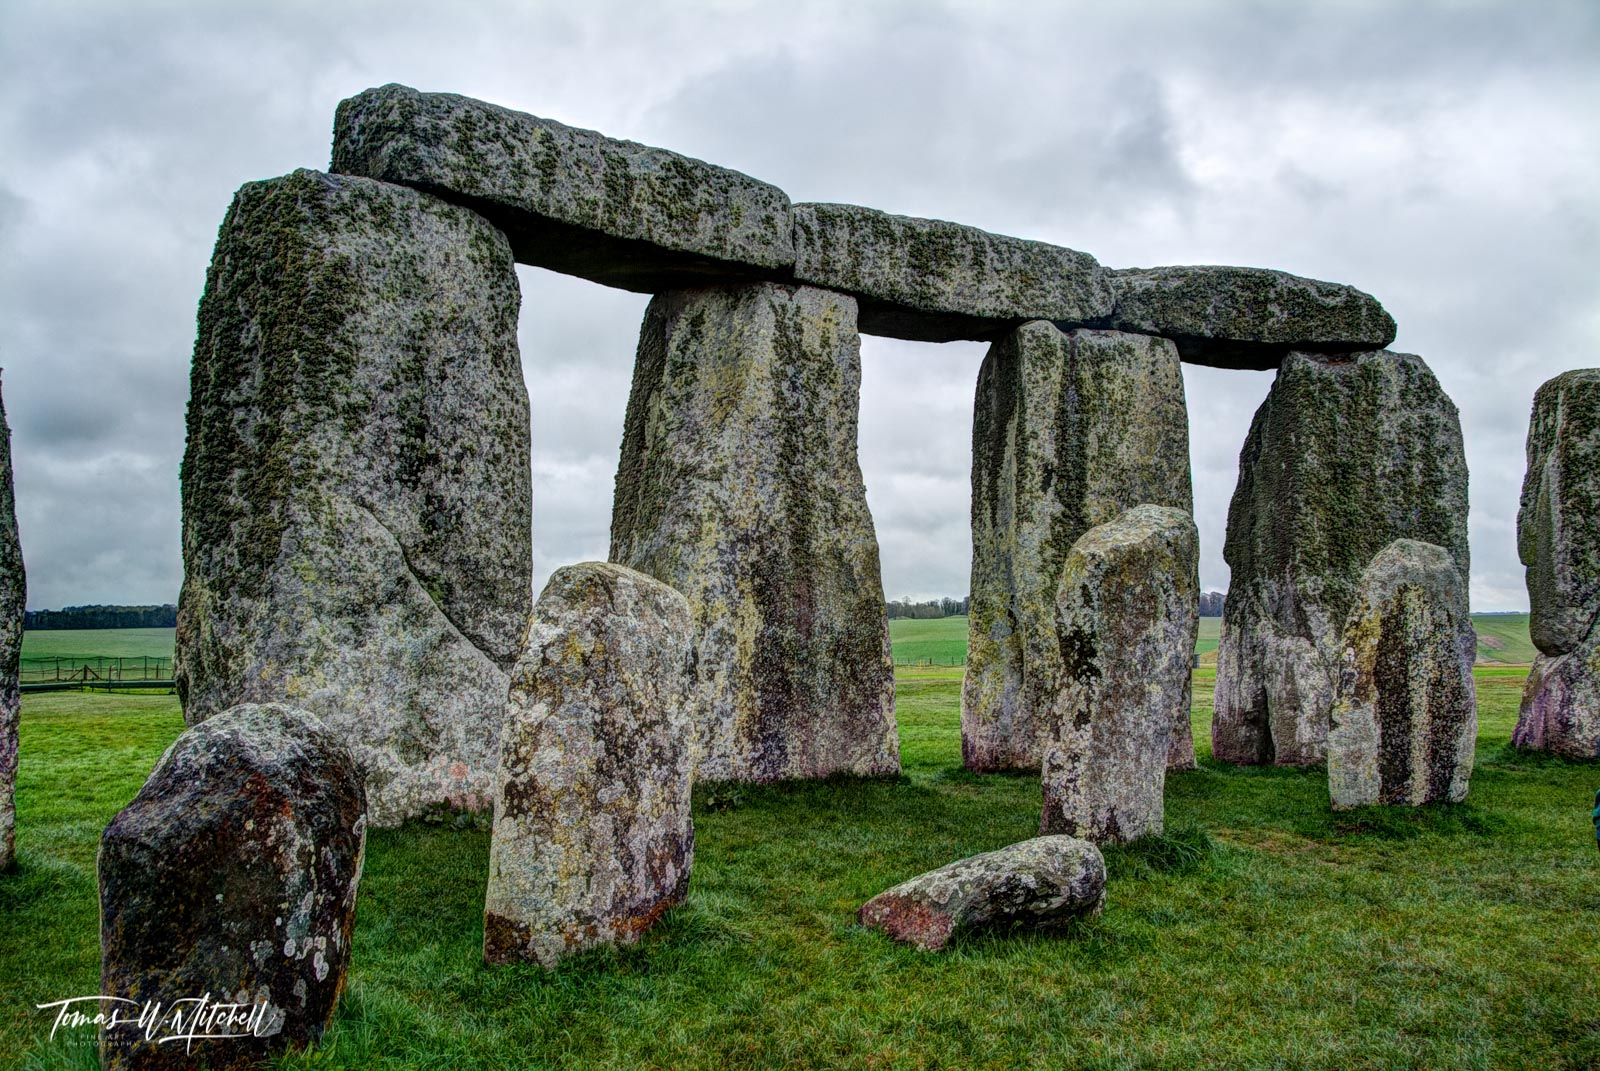 Limited Edition of 50 Museum Grade, Fine Art Prints. If you visit the Salisbury Plain, you cannot miss experiencing Stonehenge...